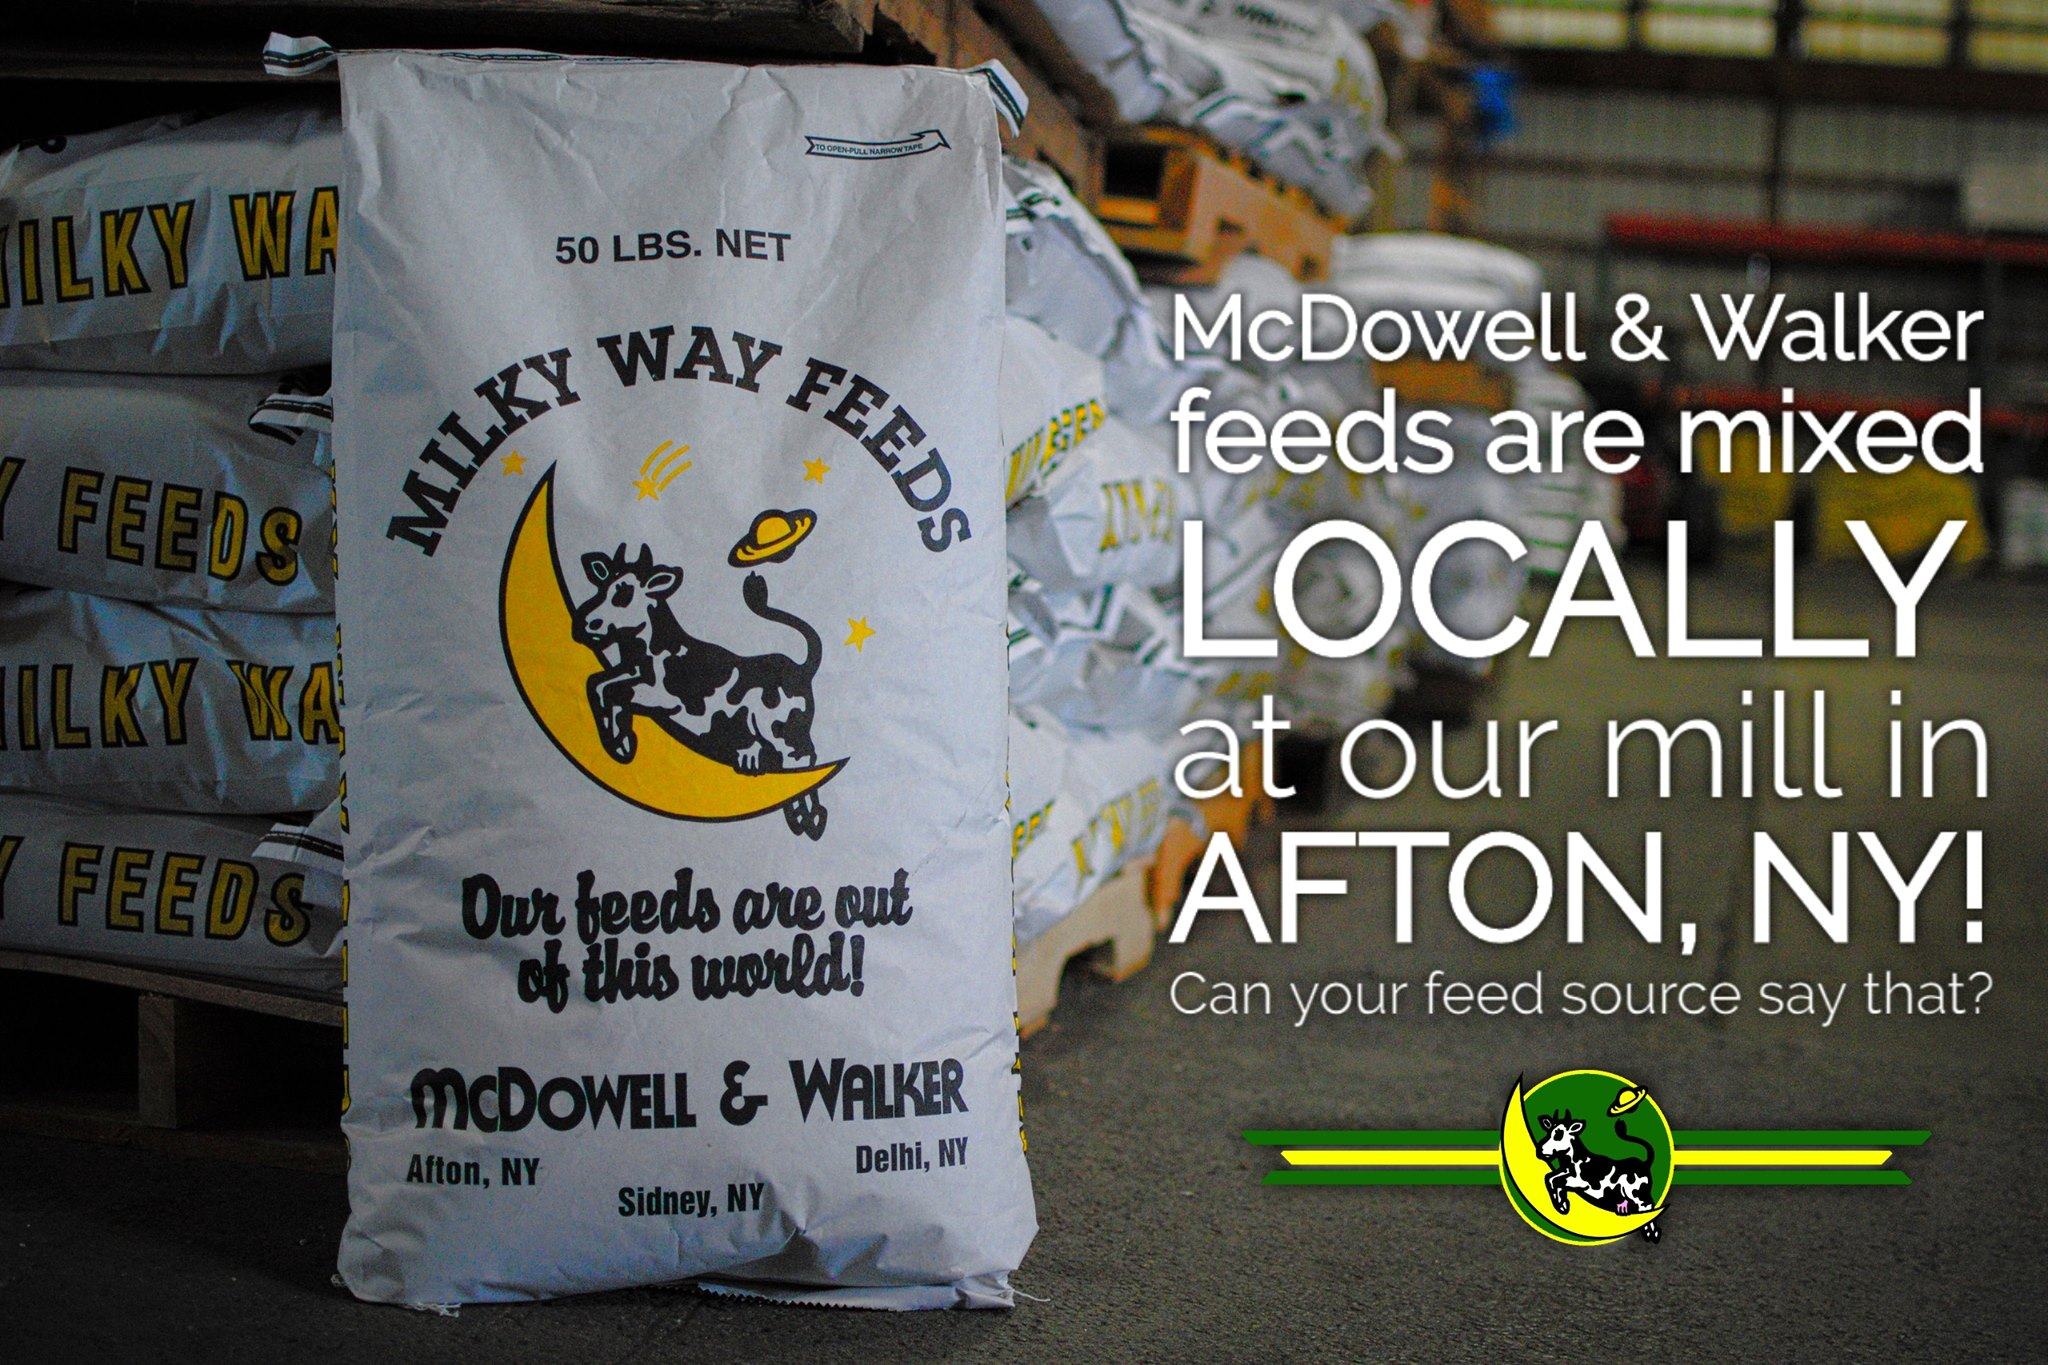 feed locally mixed in Afton